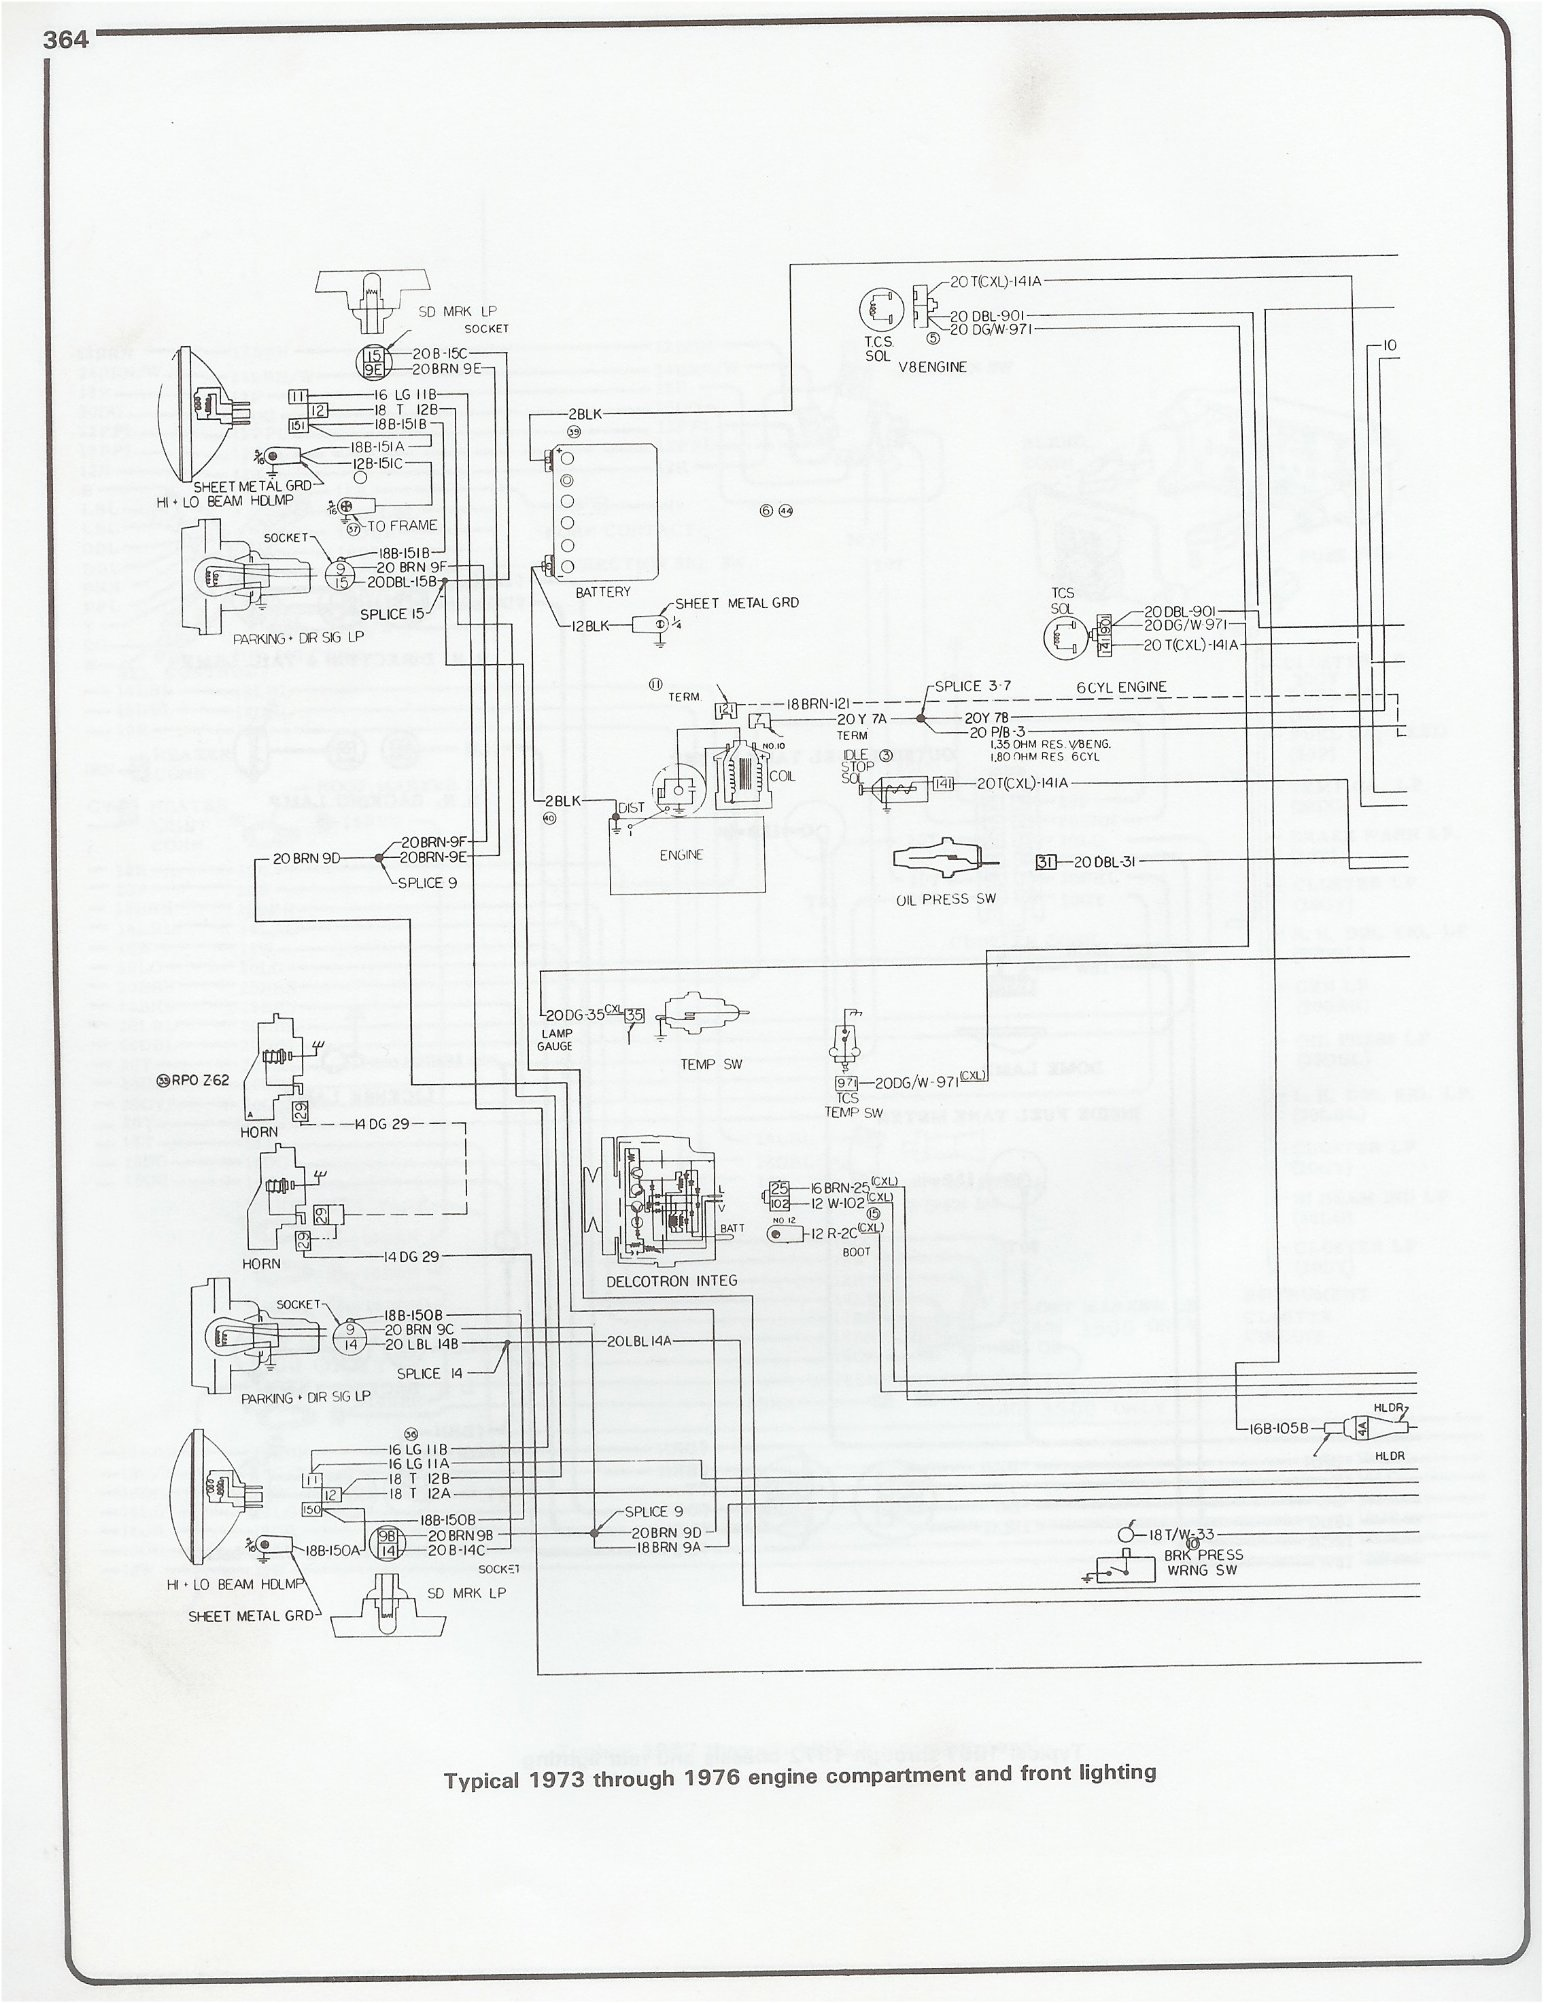 wiring diagram 93 chevy silverado with Index Php on Index php in addition 2hqx4 1992 Gmc Distributor Installation Timing Stalled as well Neutral Switch Vss Wiring 282016 additionally 6y1sj Chevrolet Corvette Lt1 C4 Cruise Control Module Location furthermore P 0996b43f81b3c8ee.